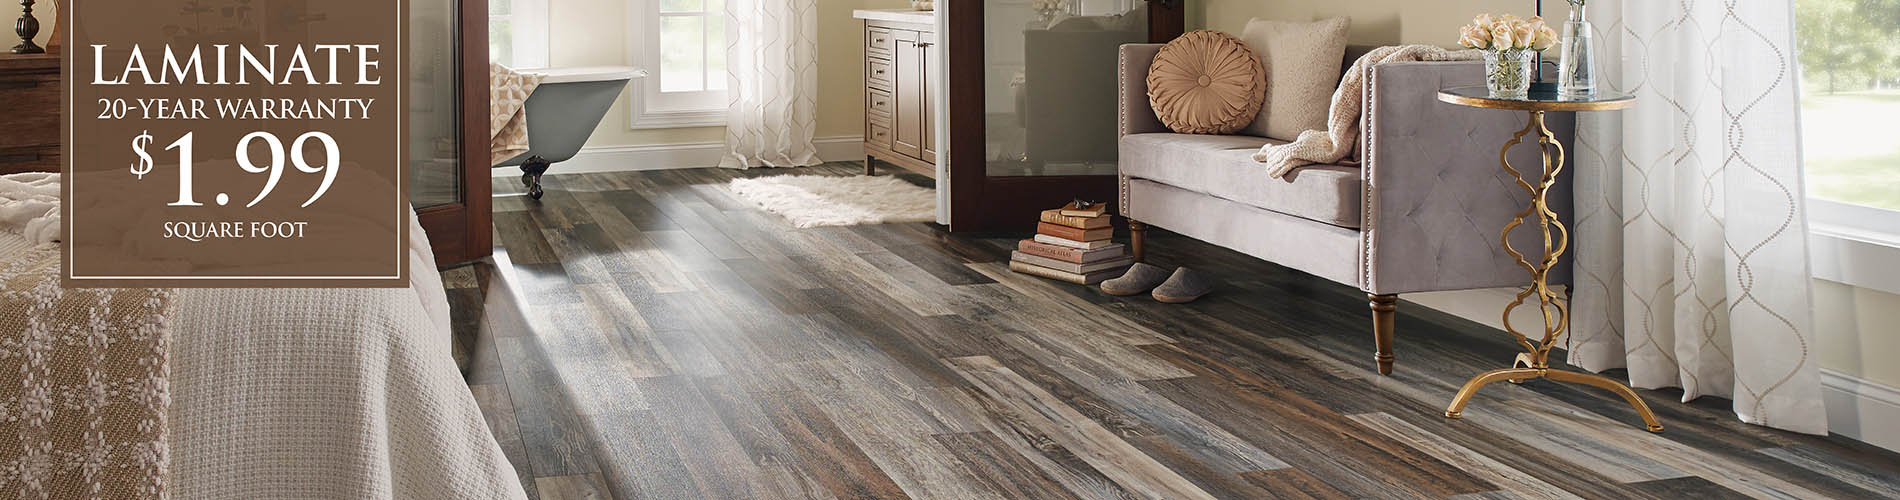 Laminate on sale just $1.99 sq.ft. with an included 20 year warranty!